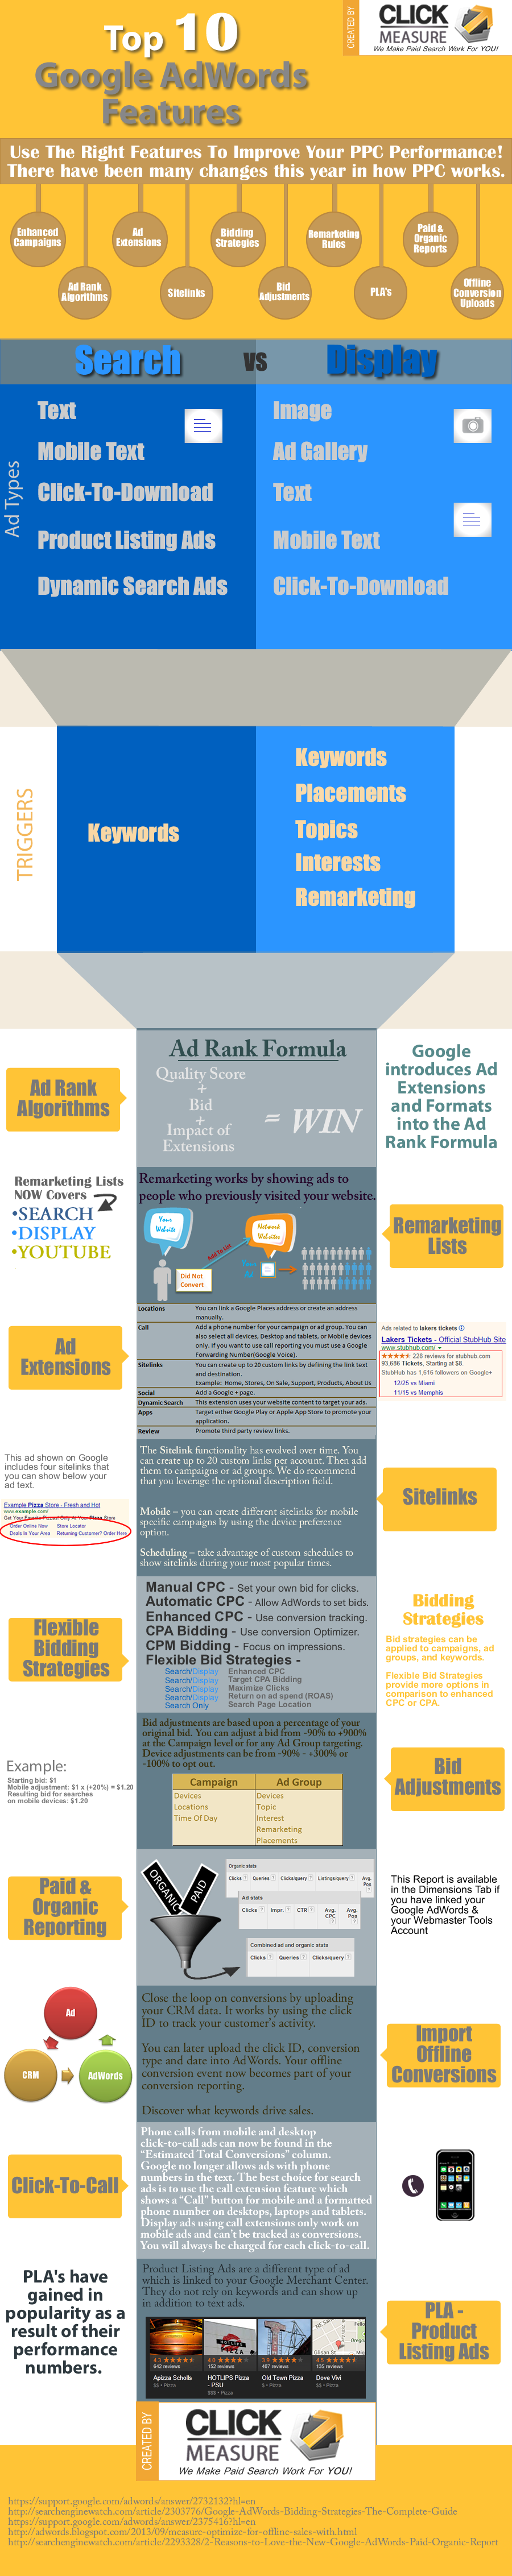 latest-adwords-features